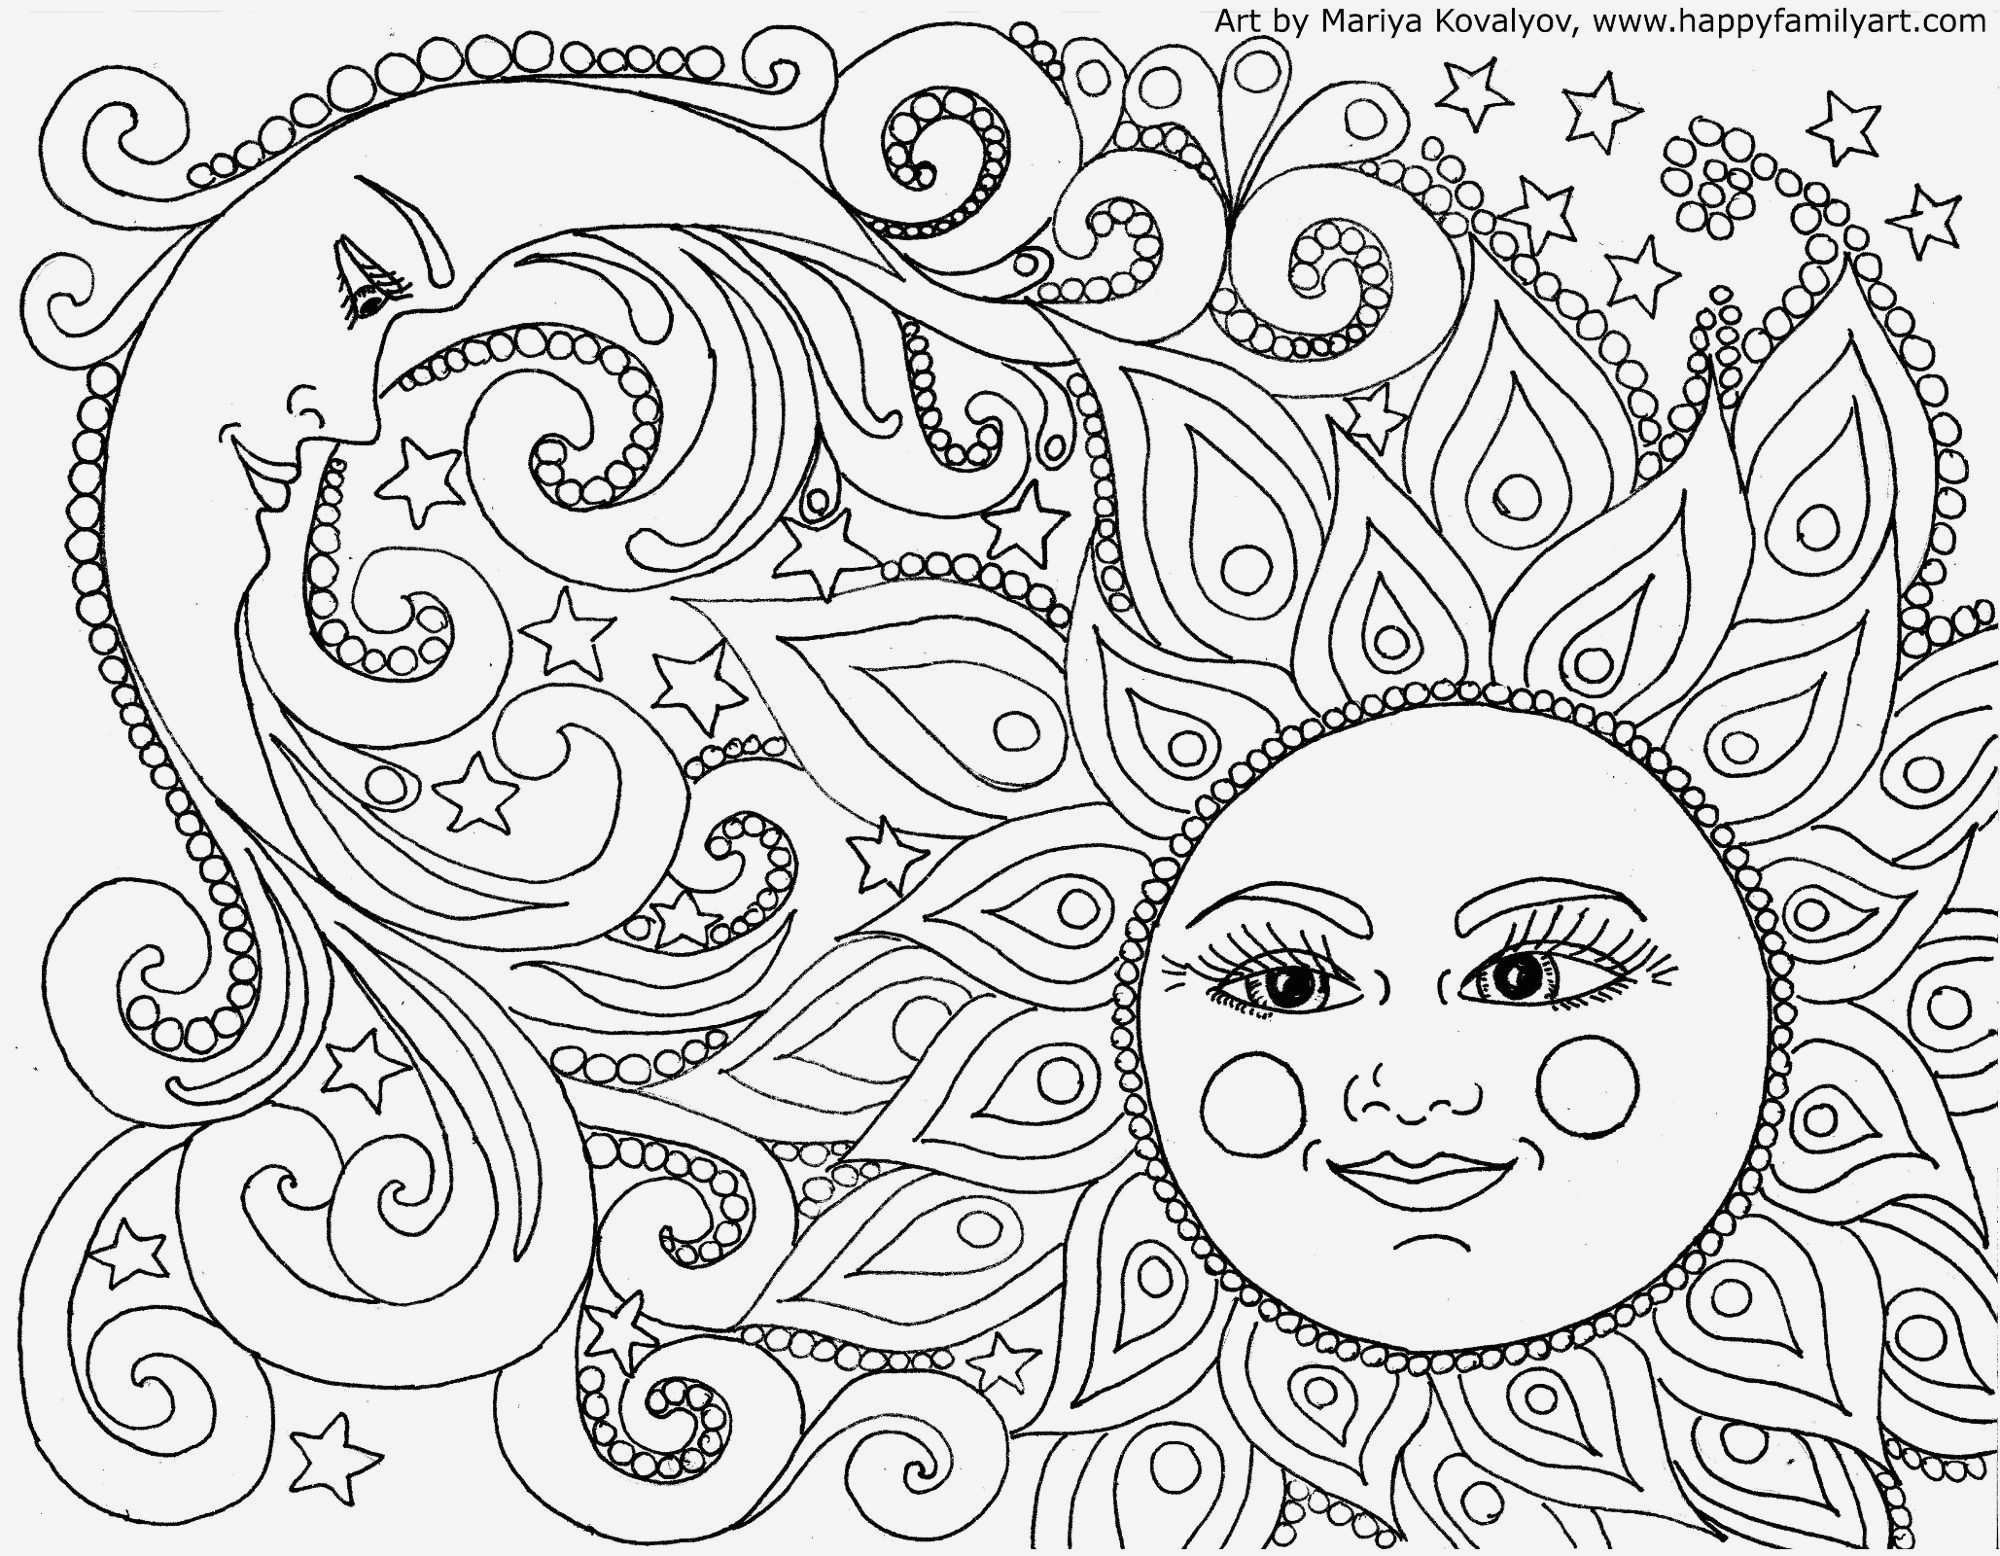 Coloring Ideas : Easy Printable Coloringes Beautiful Grown Up To - Free Printable Coloring Books For Adults